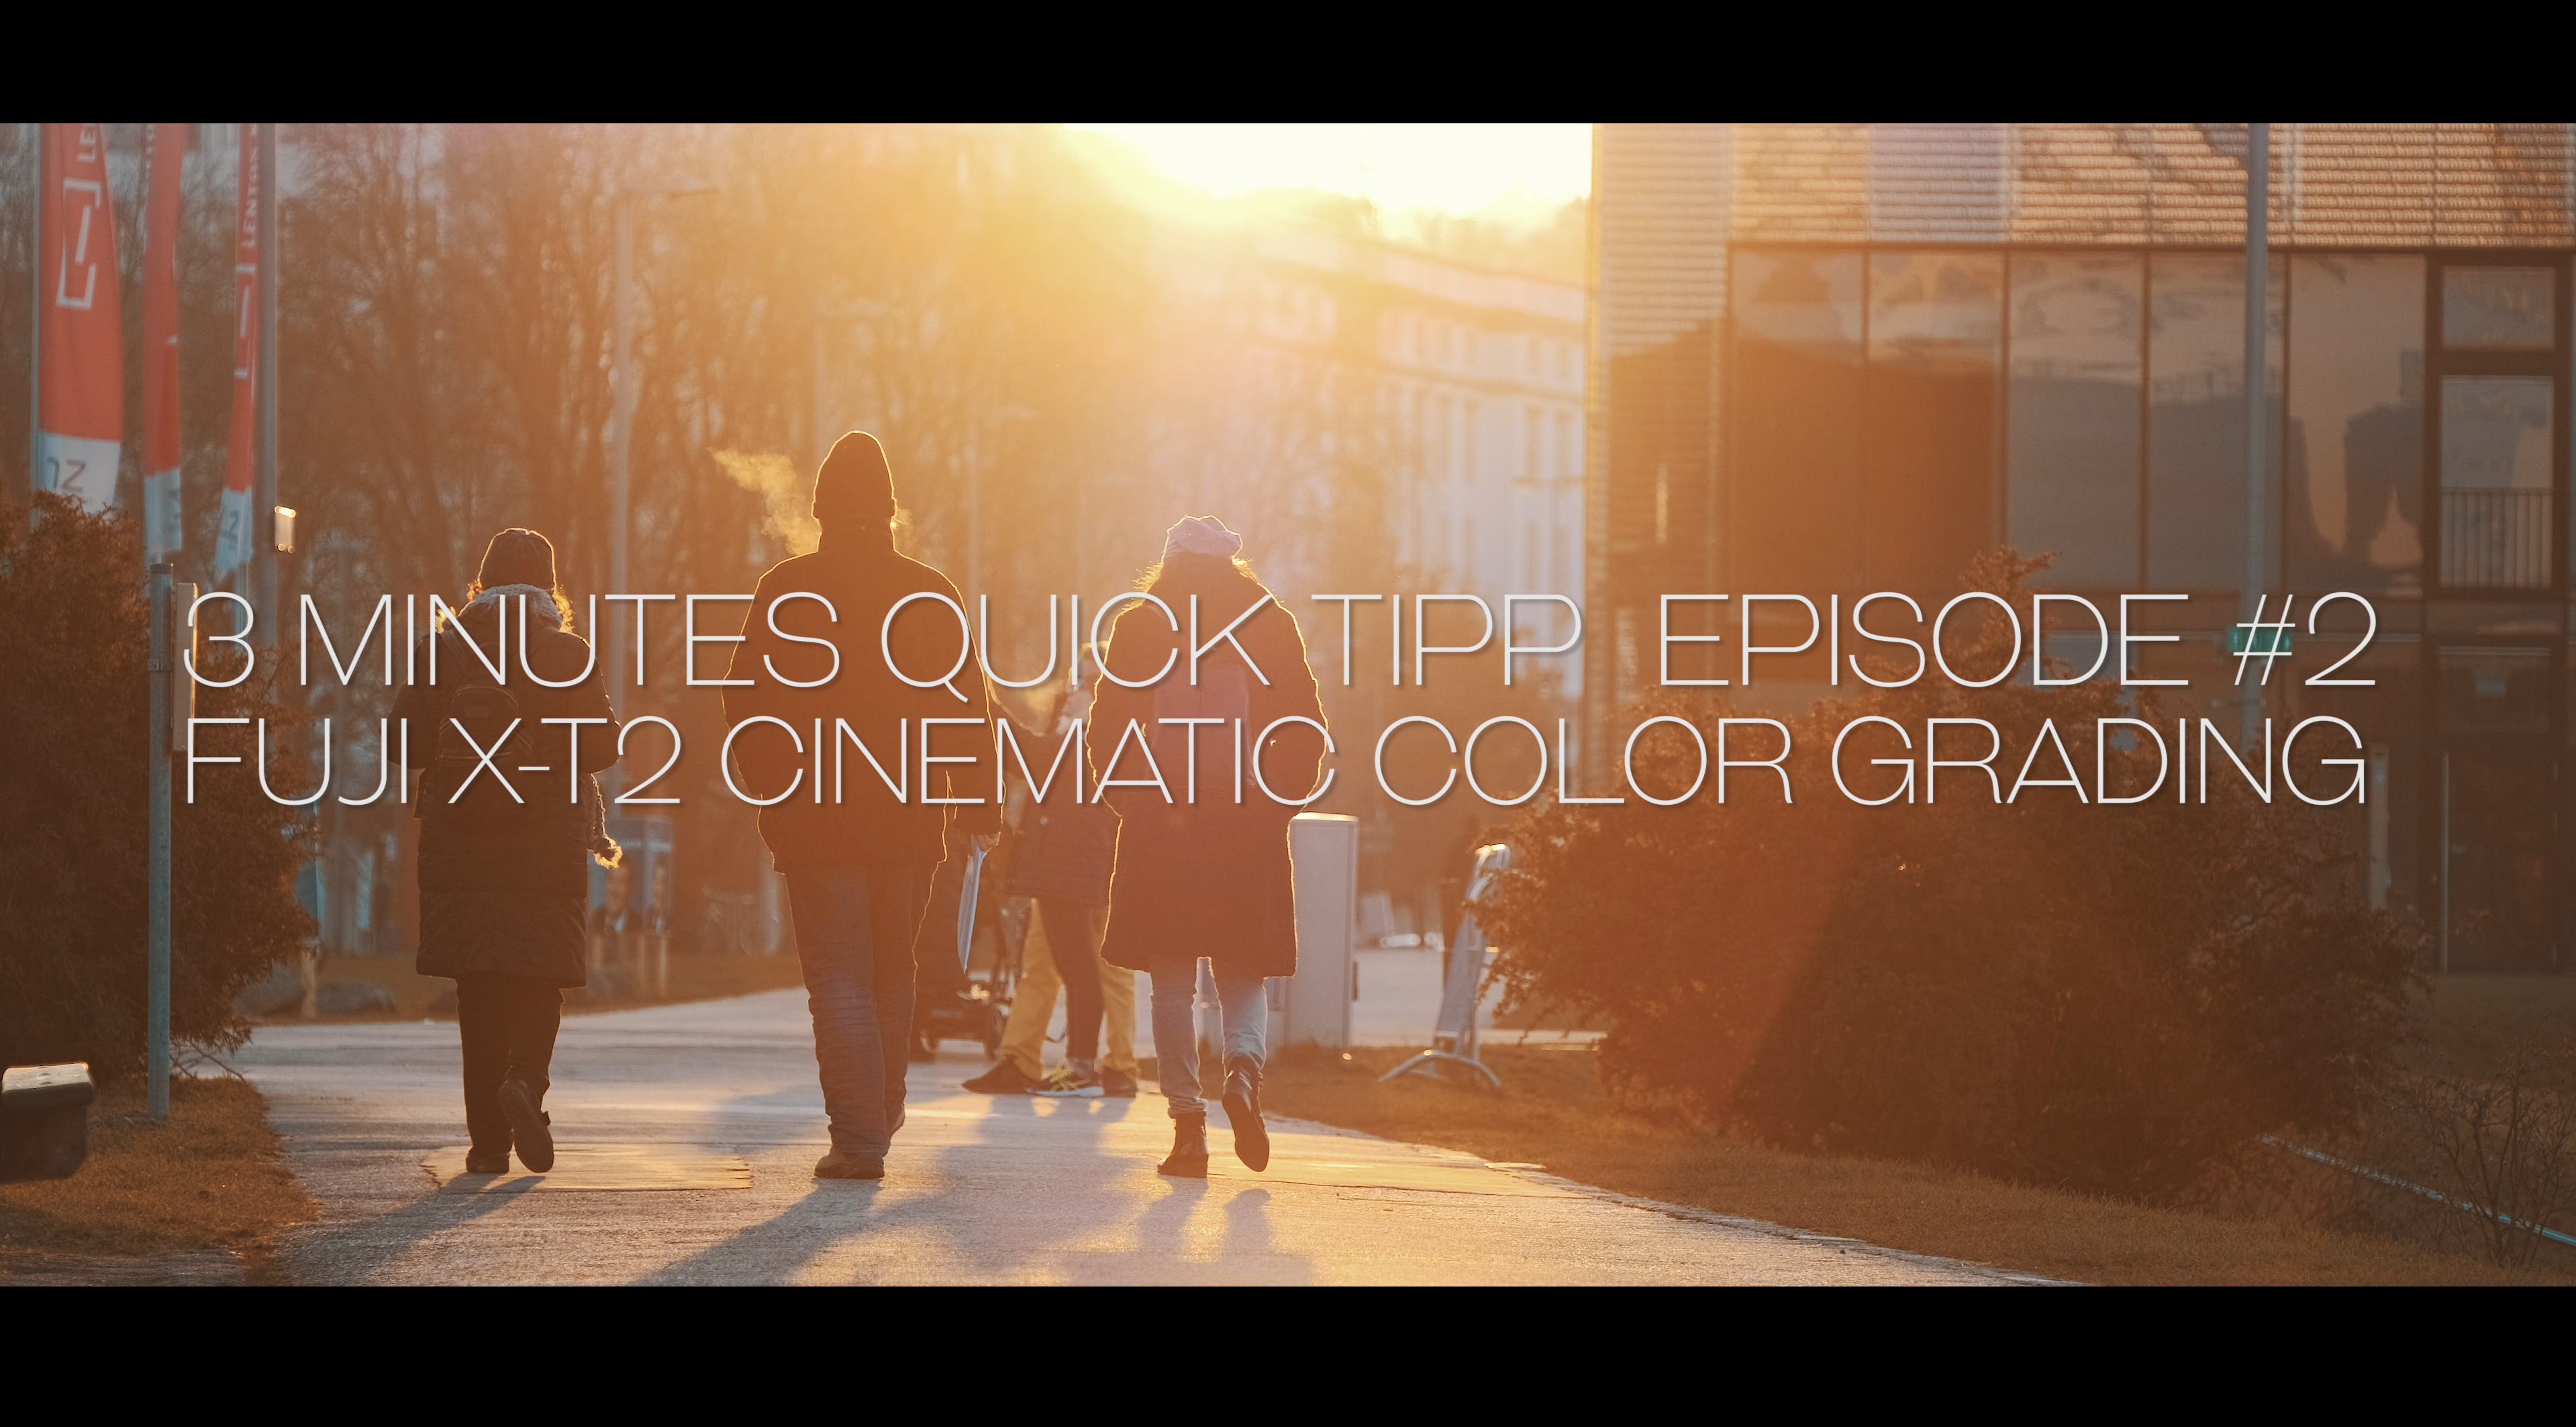 Fuji X-T2 Cinematic Color Grading – 3 Minutes Quick Tipp Episode #2